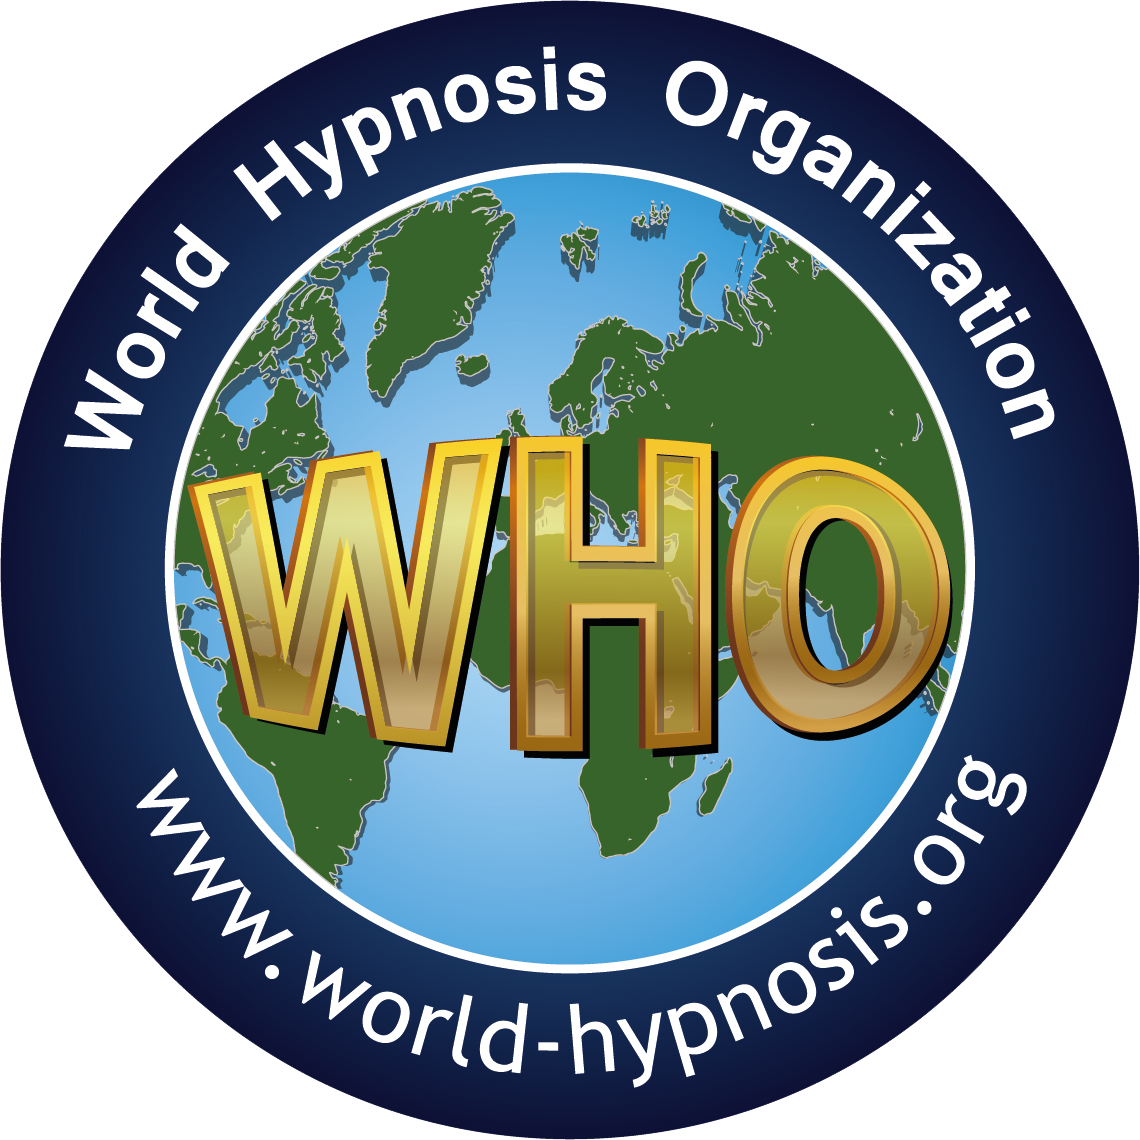 World Hypnosis Organization (WHO)